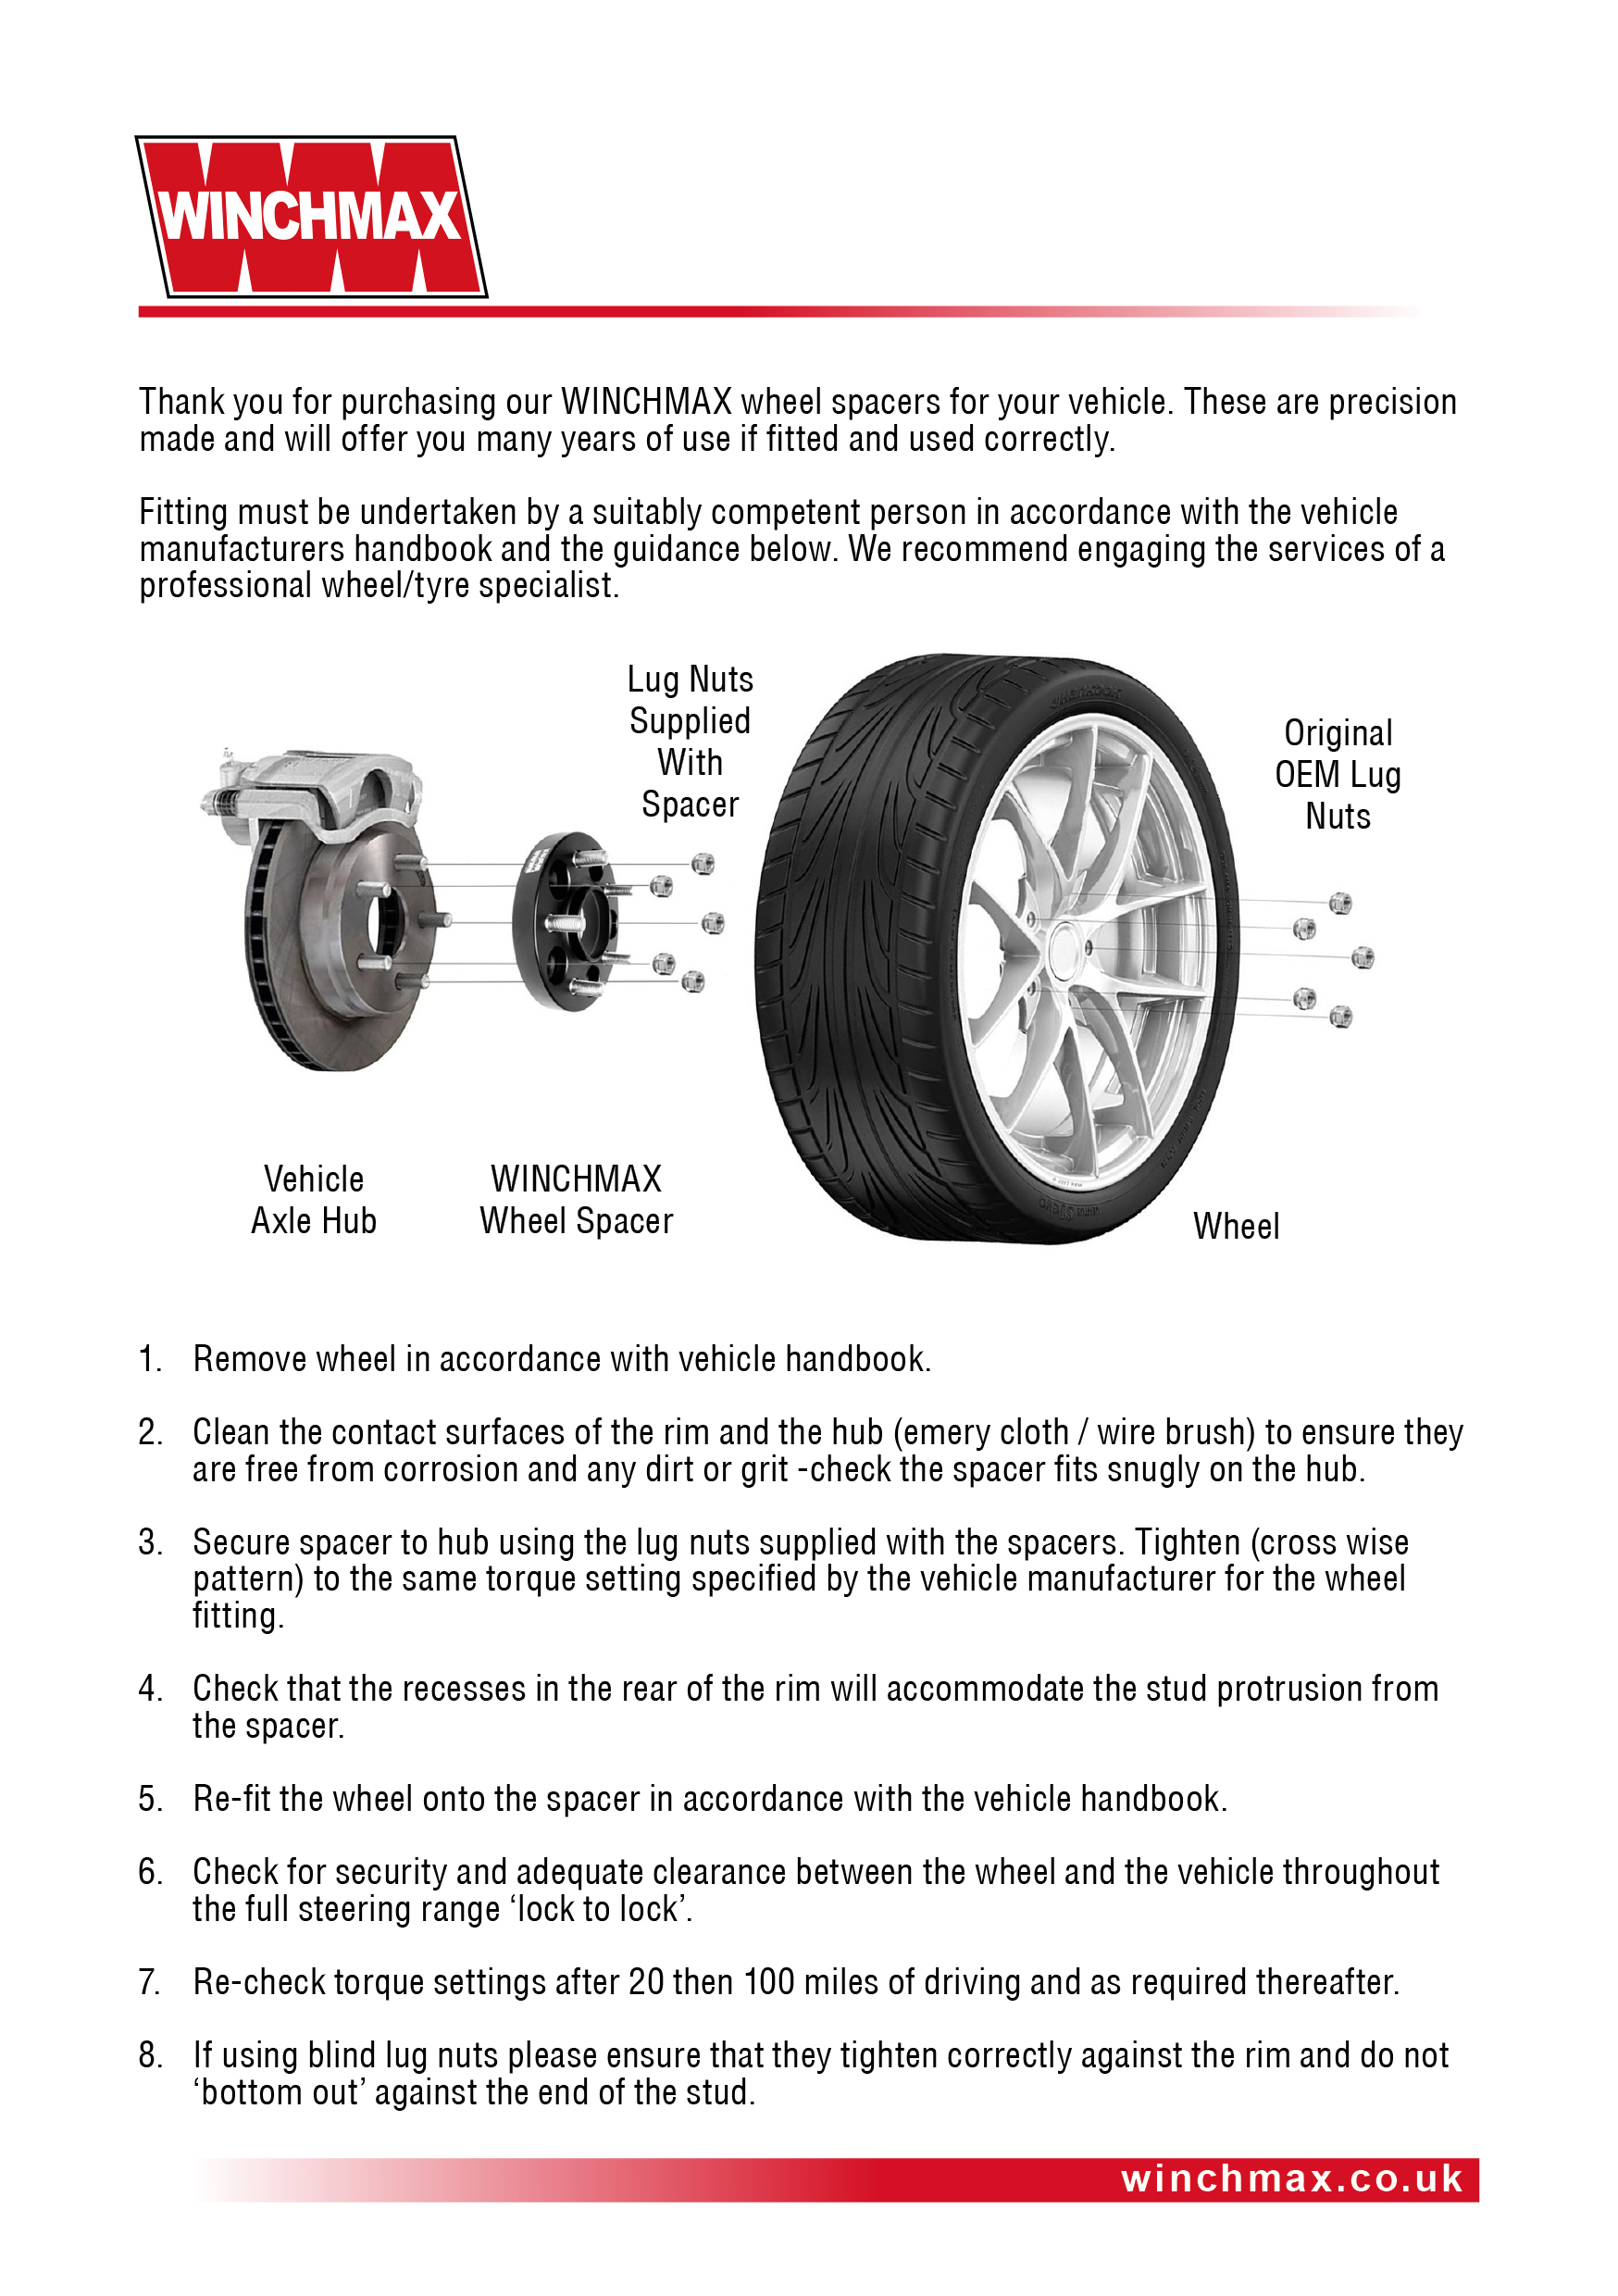 Winchmax wheel spacer guide3